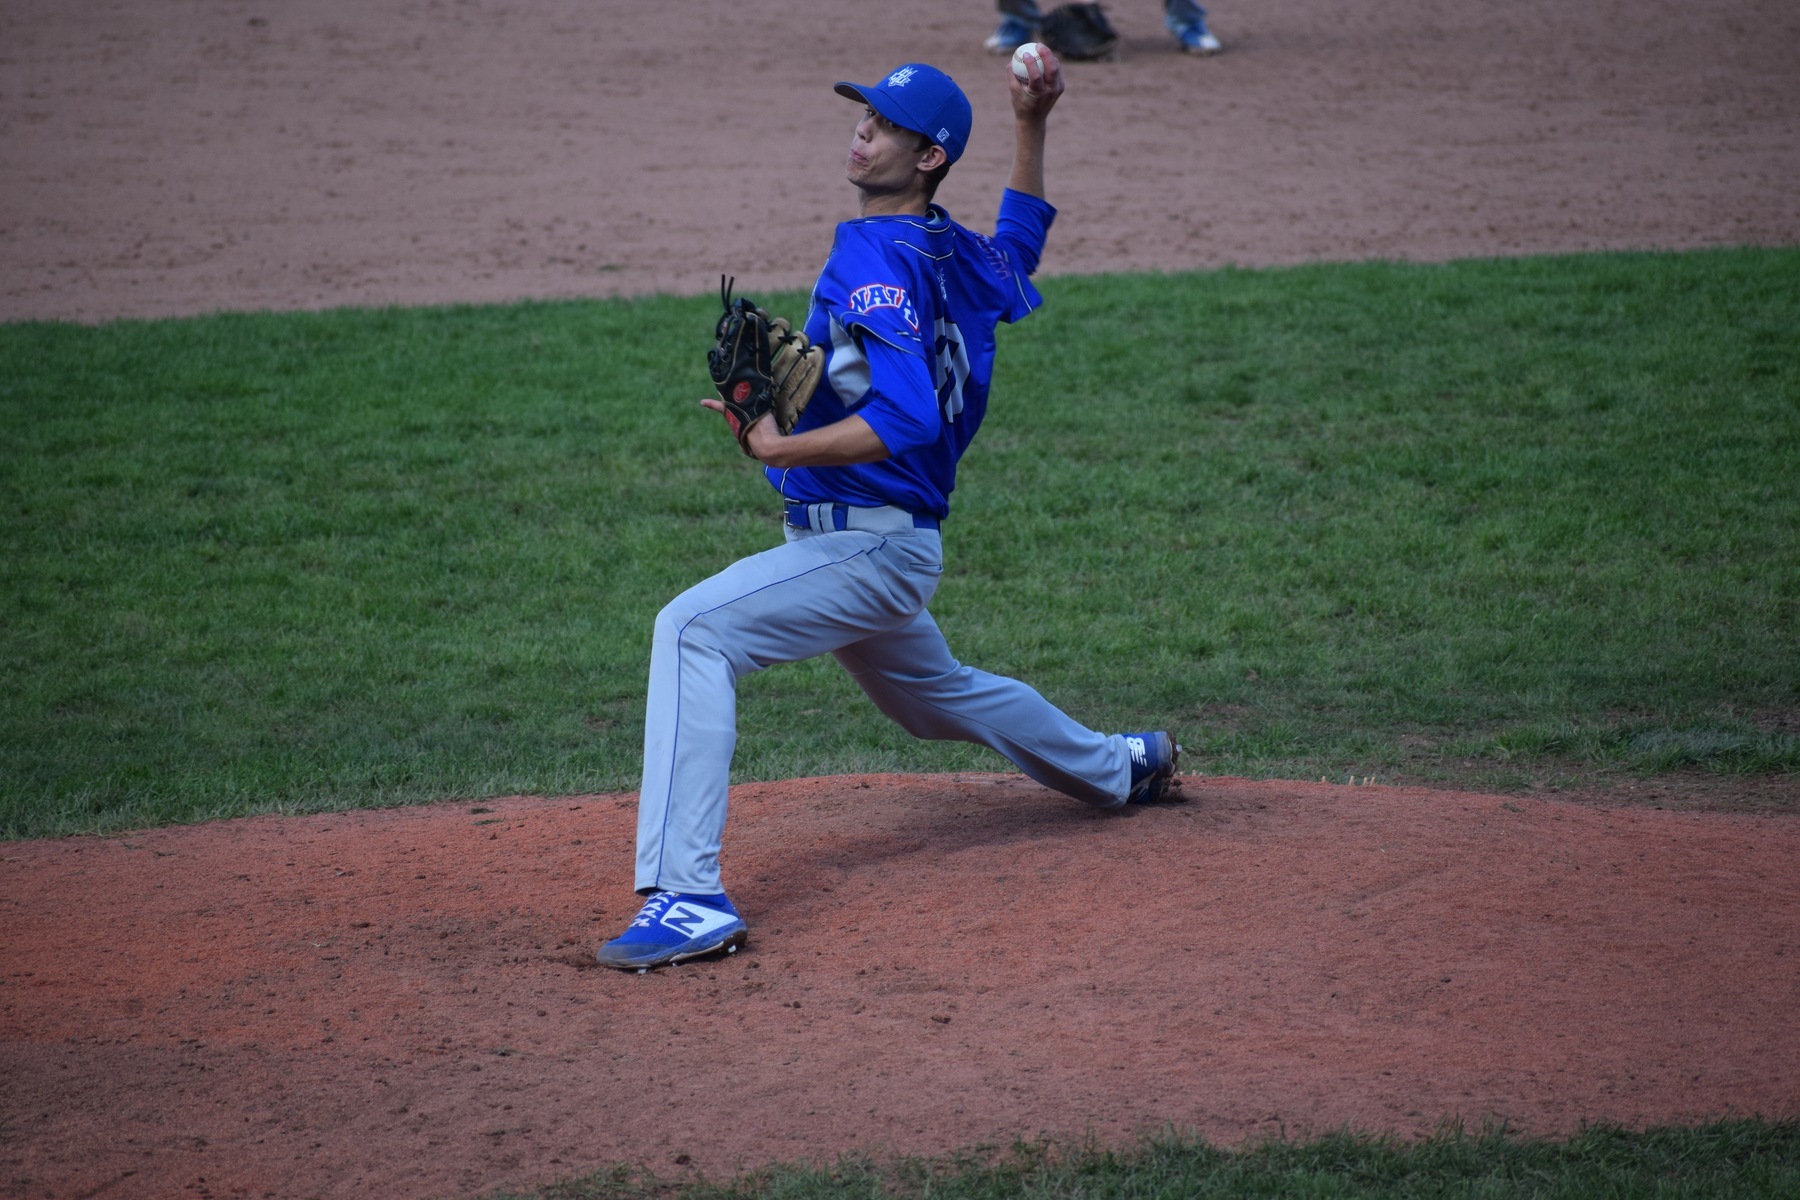 Lawrence Tech Splits Final Day of Spring Trip, Gallant Pitches Gem in 13-0 Win Over Aquinas